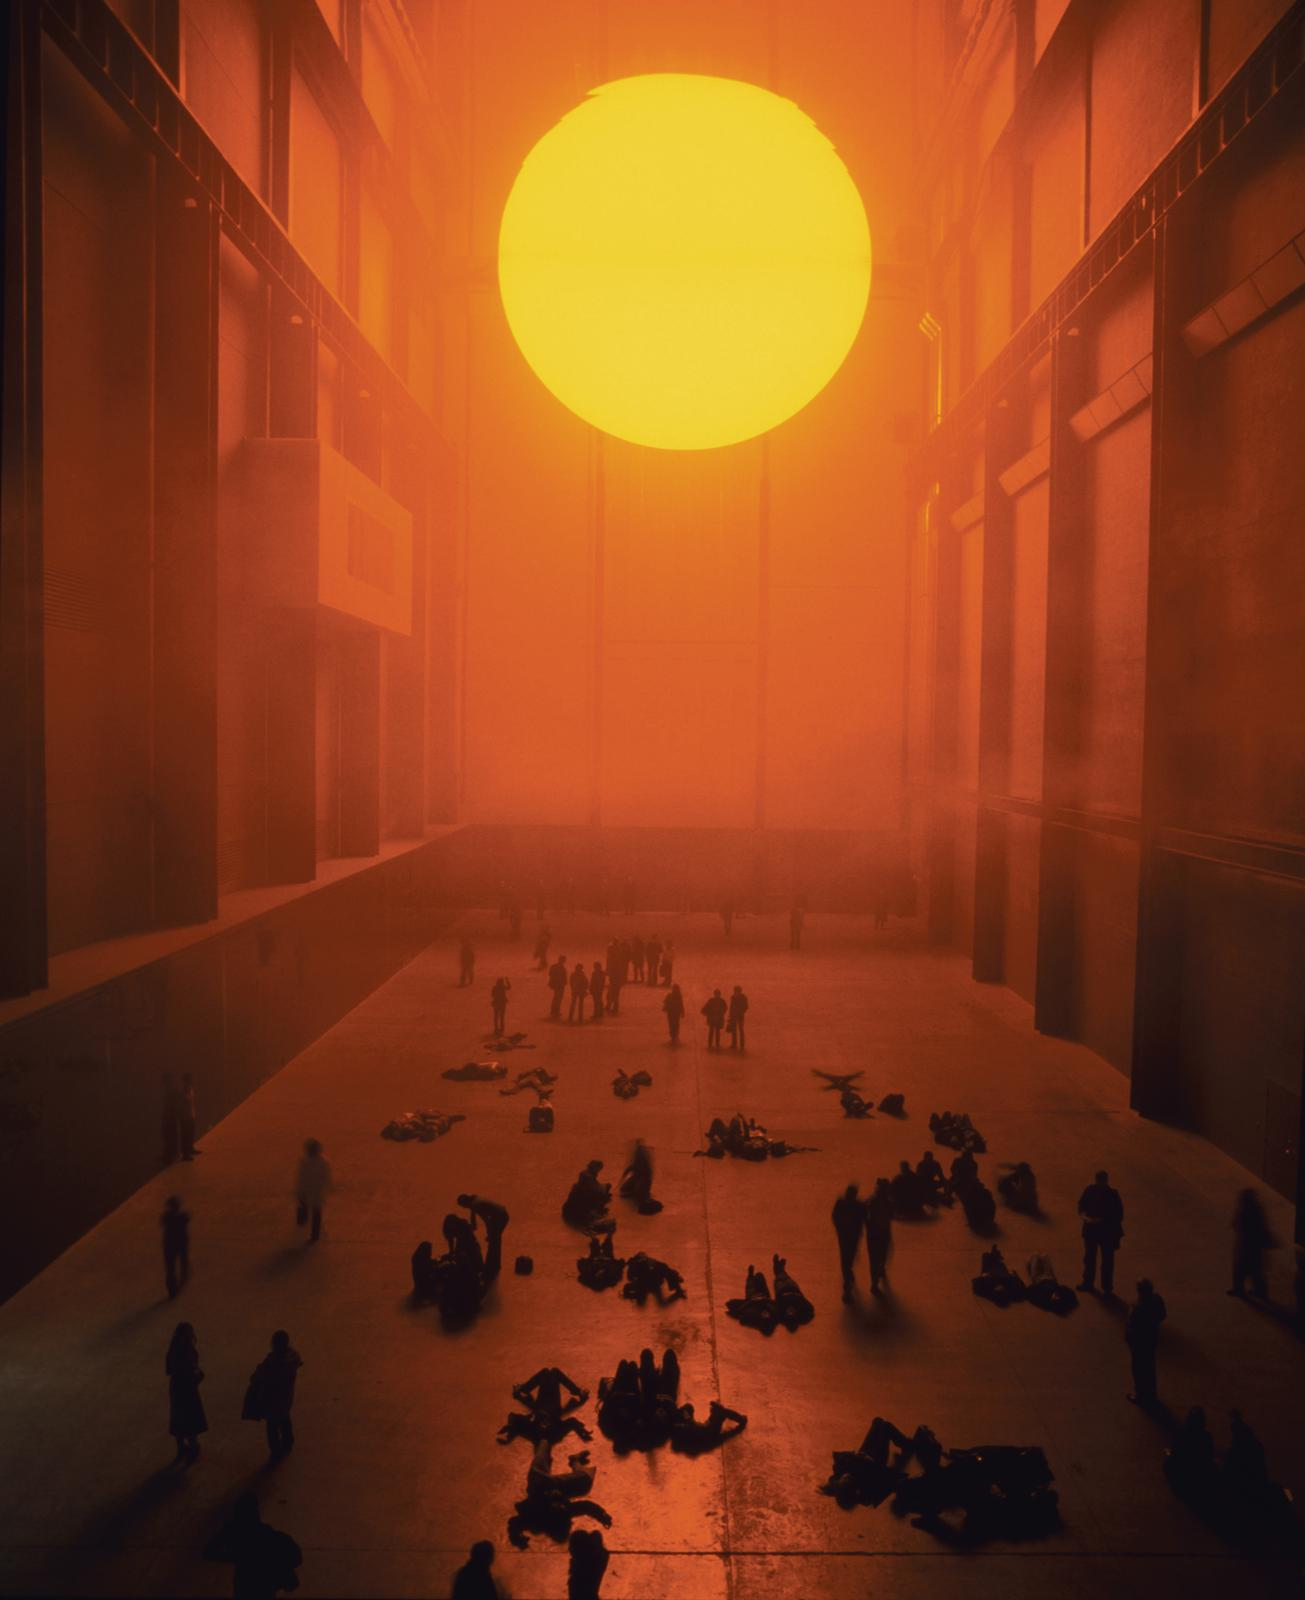 Olafur Eliasson, <em>The weather project</em>, Tate Modern, London, 2003